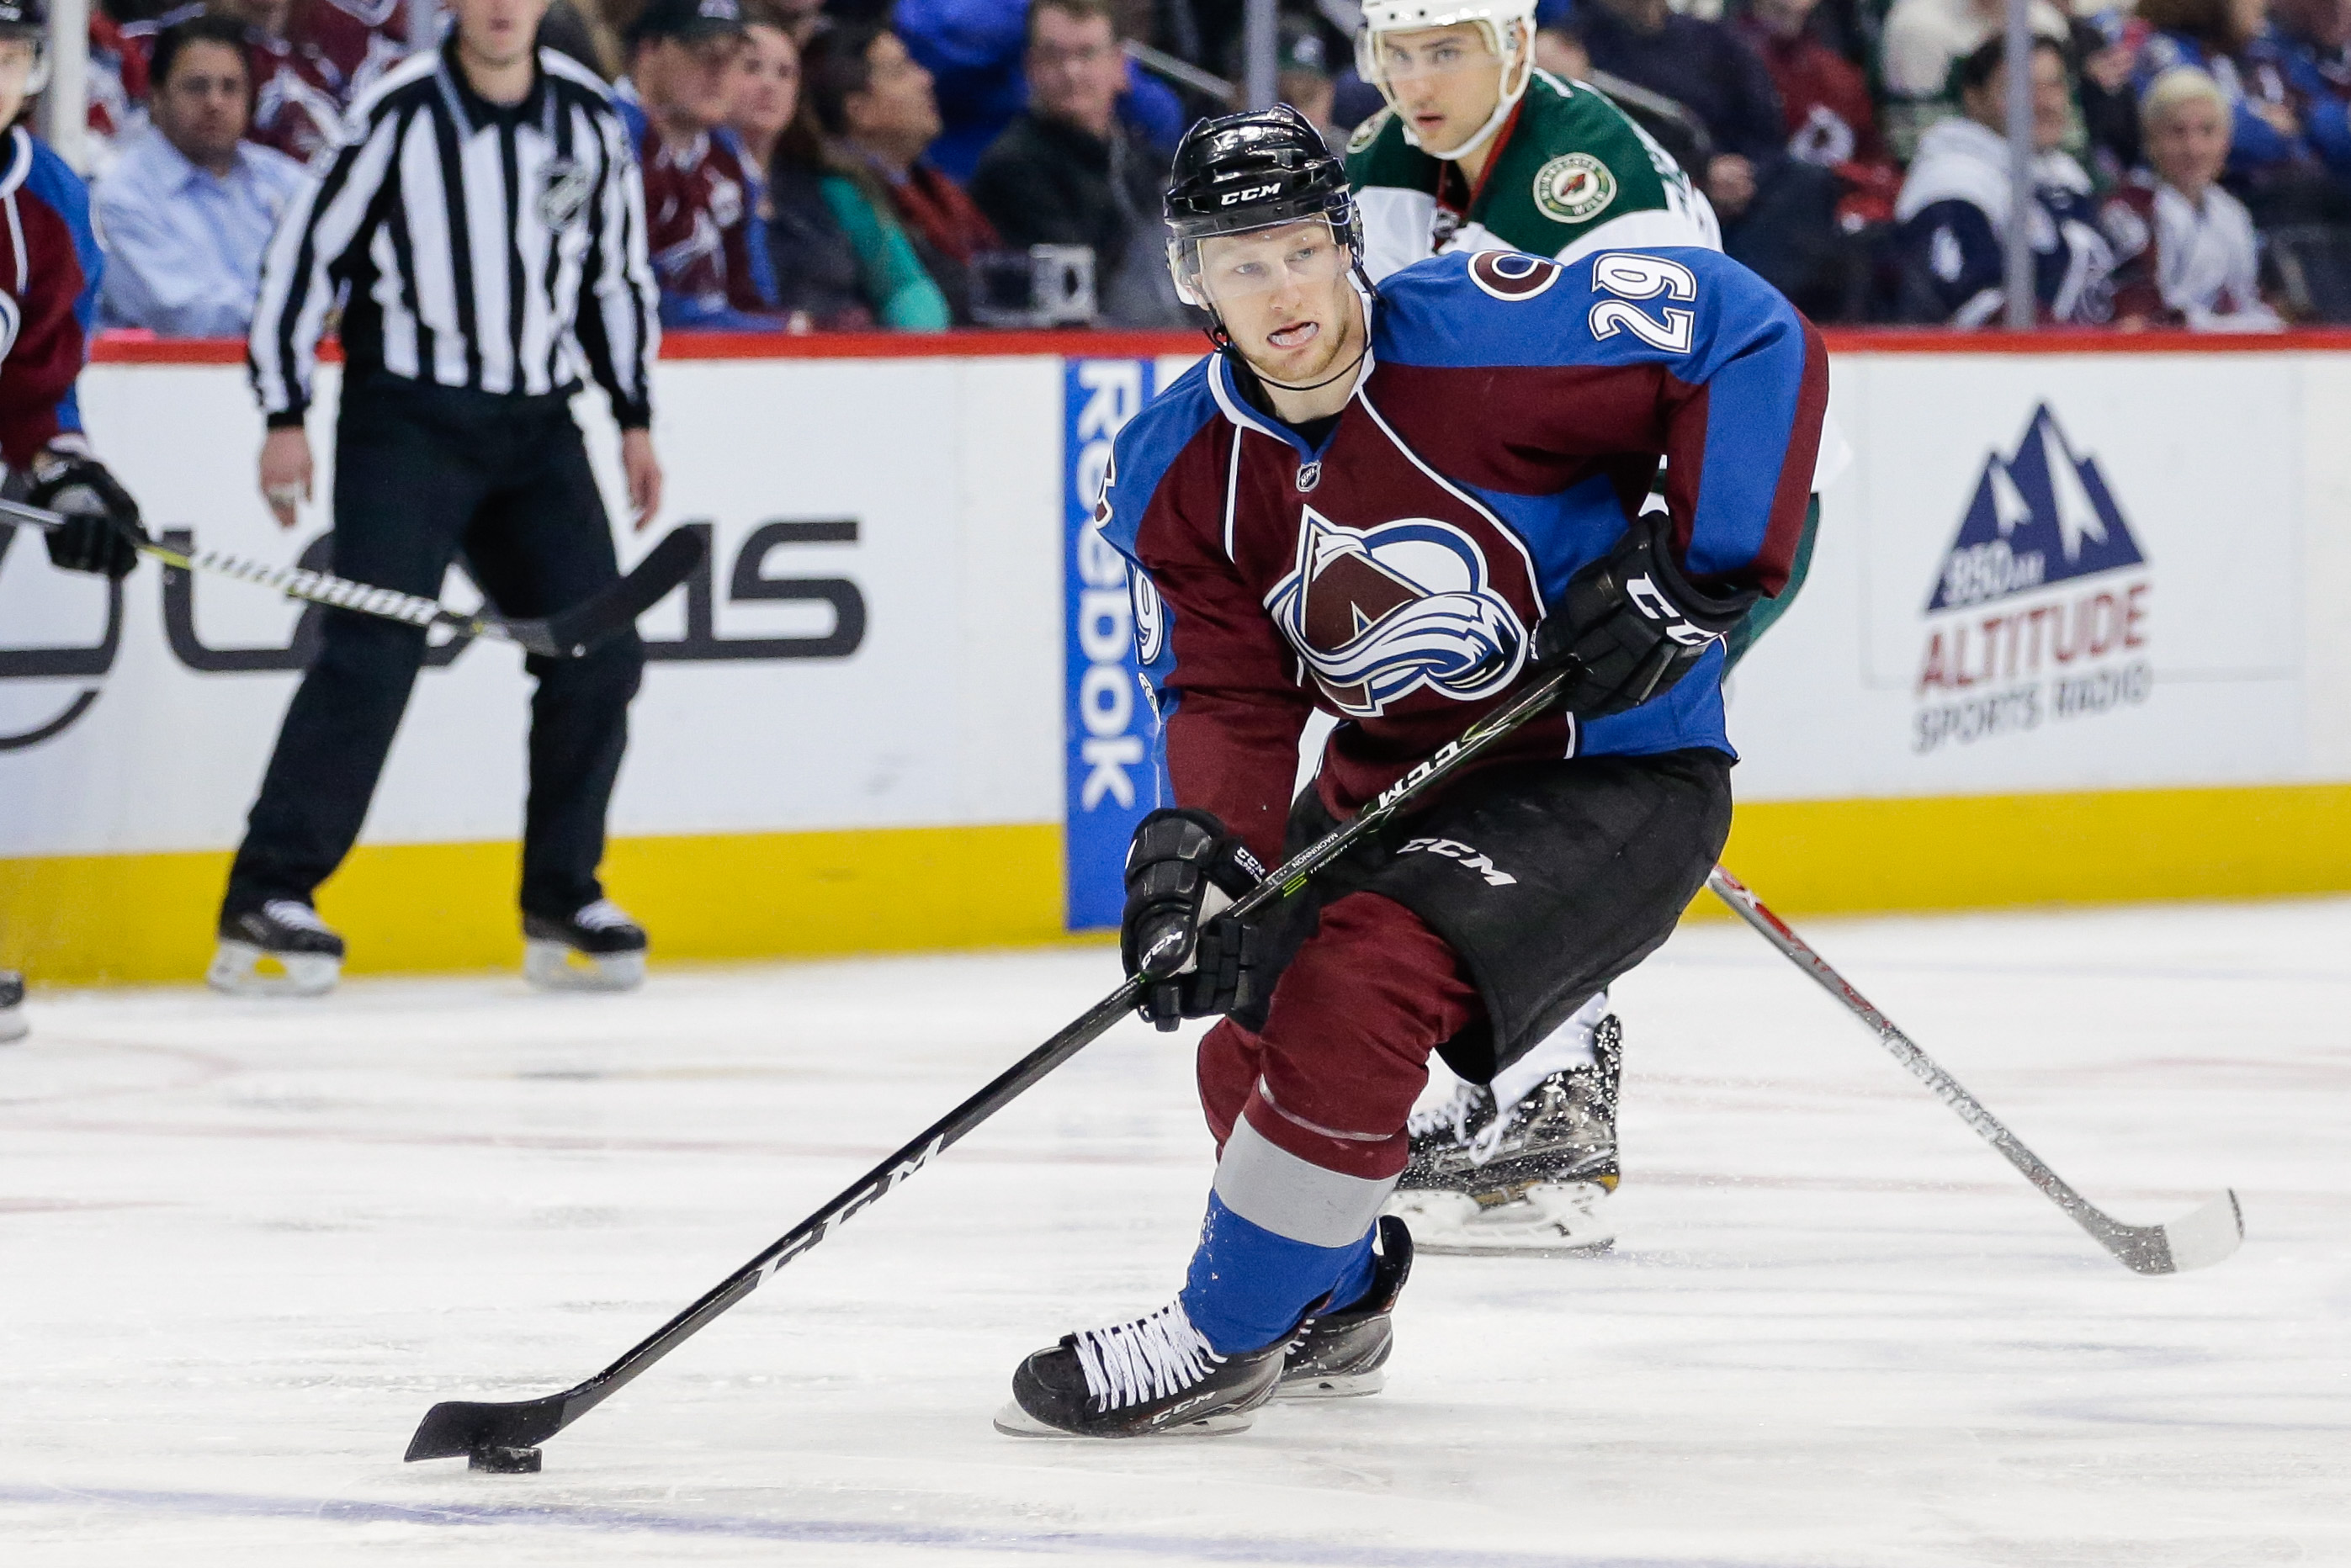 10007676-nhl-minnesota-wild-at-colorado-avalanche